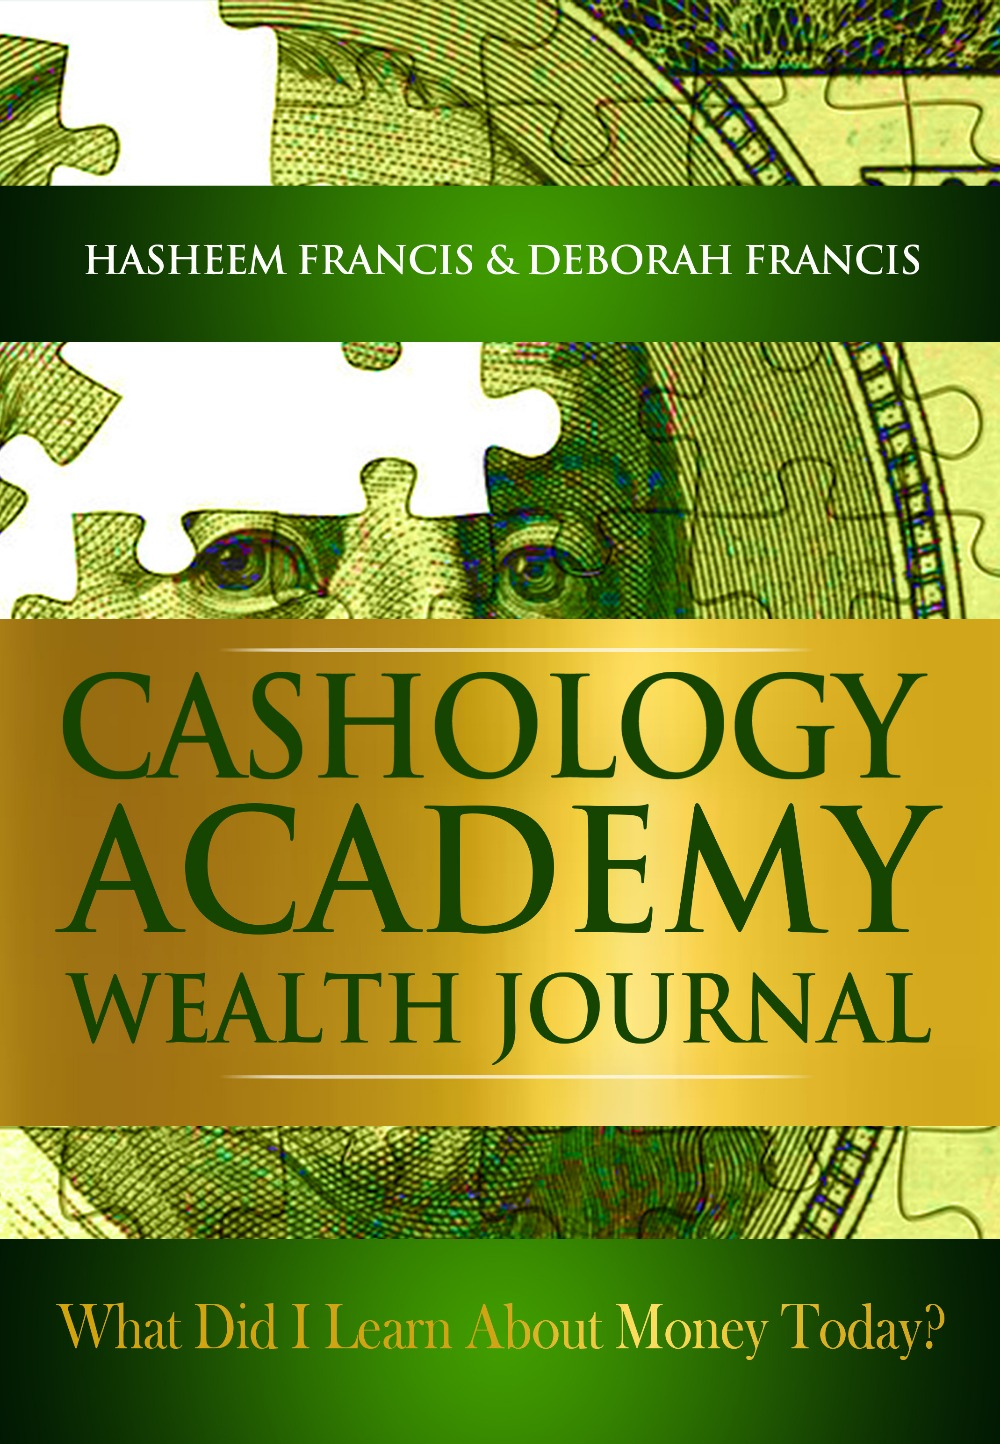 Cashology Academy Wealth Journal